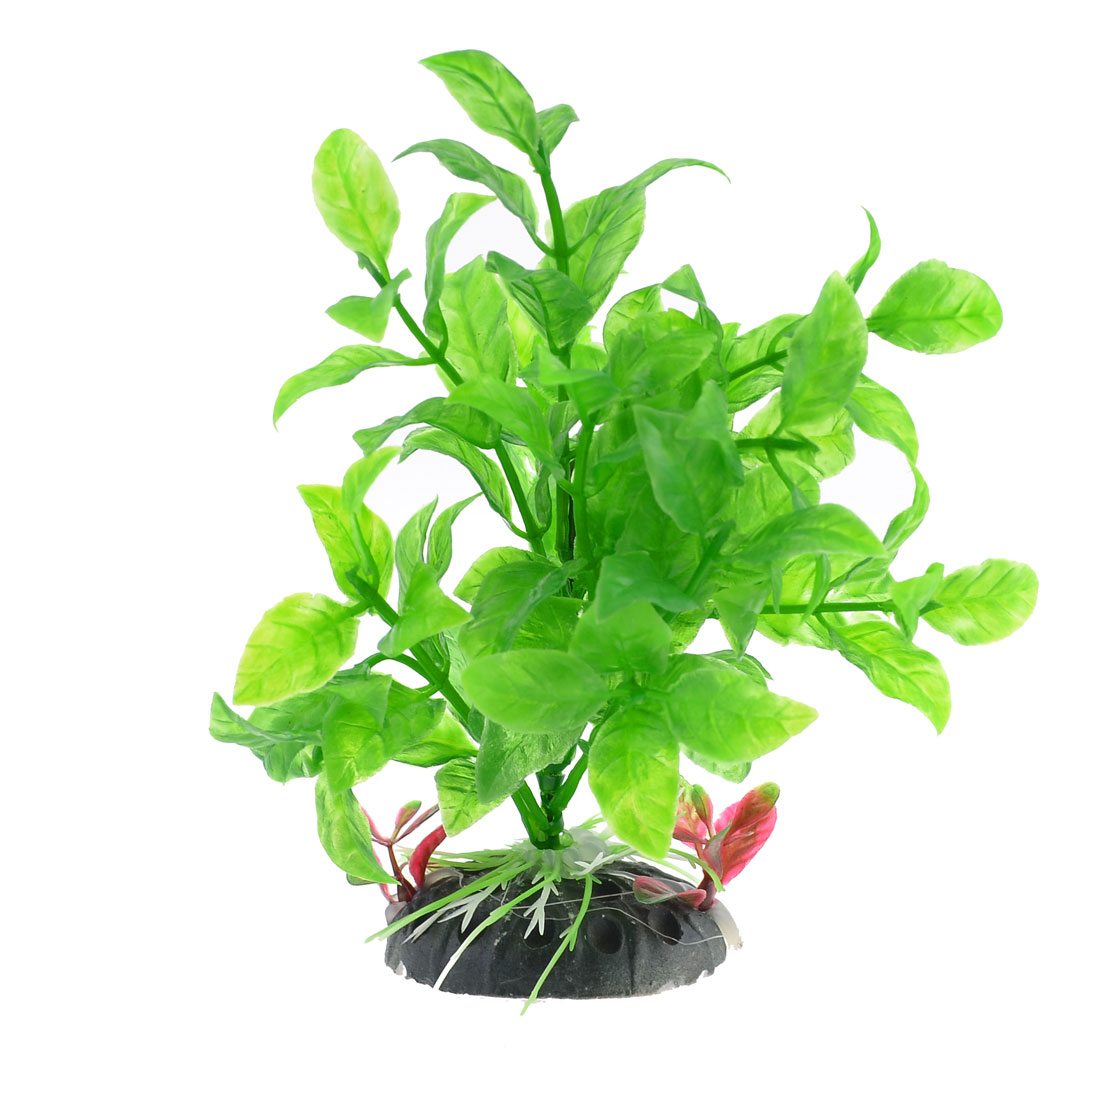 "Ceramic Base Manmade Plastic Green Vivid Grass Plants 5.9"" High for Fish Tank"